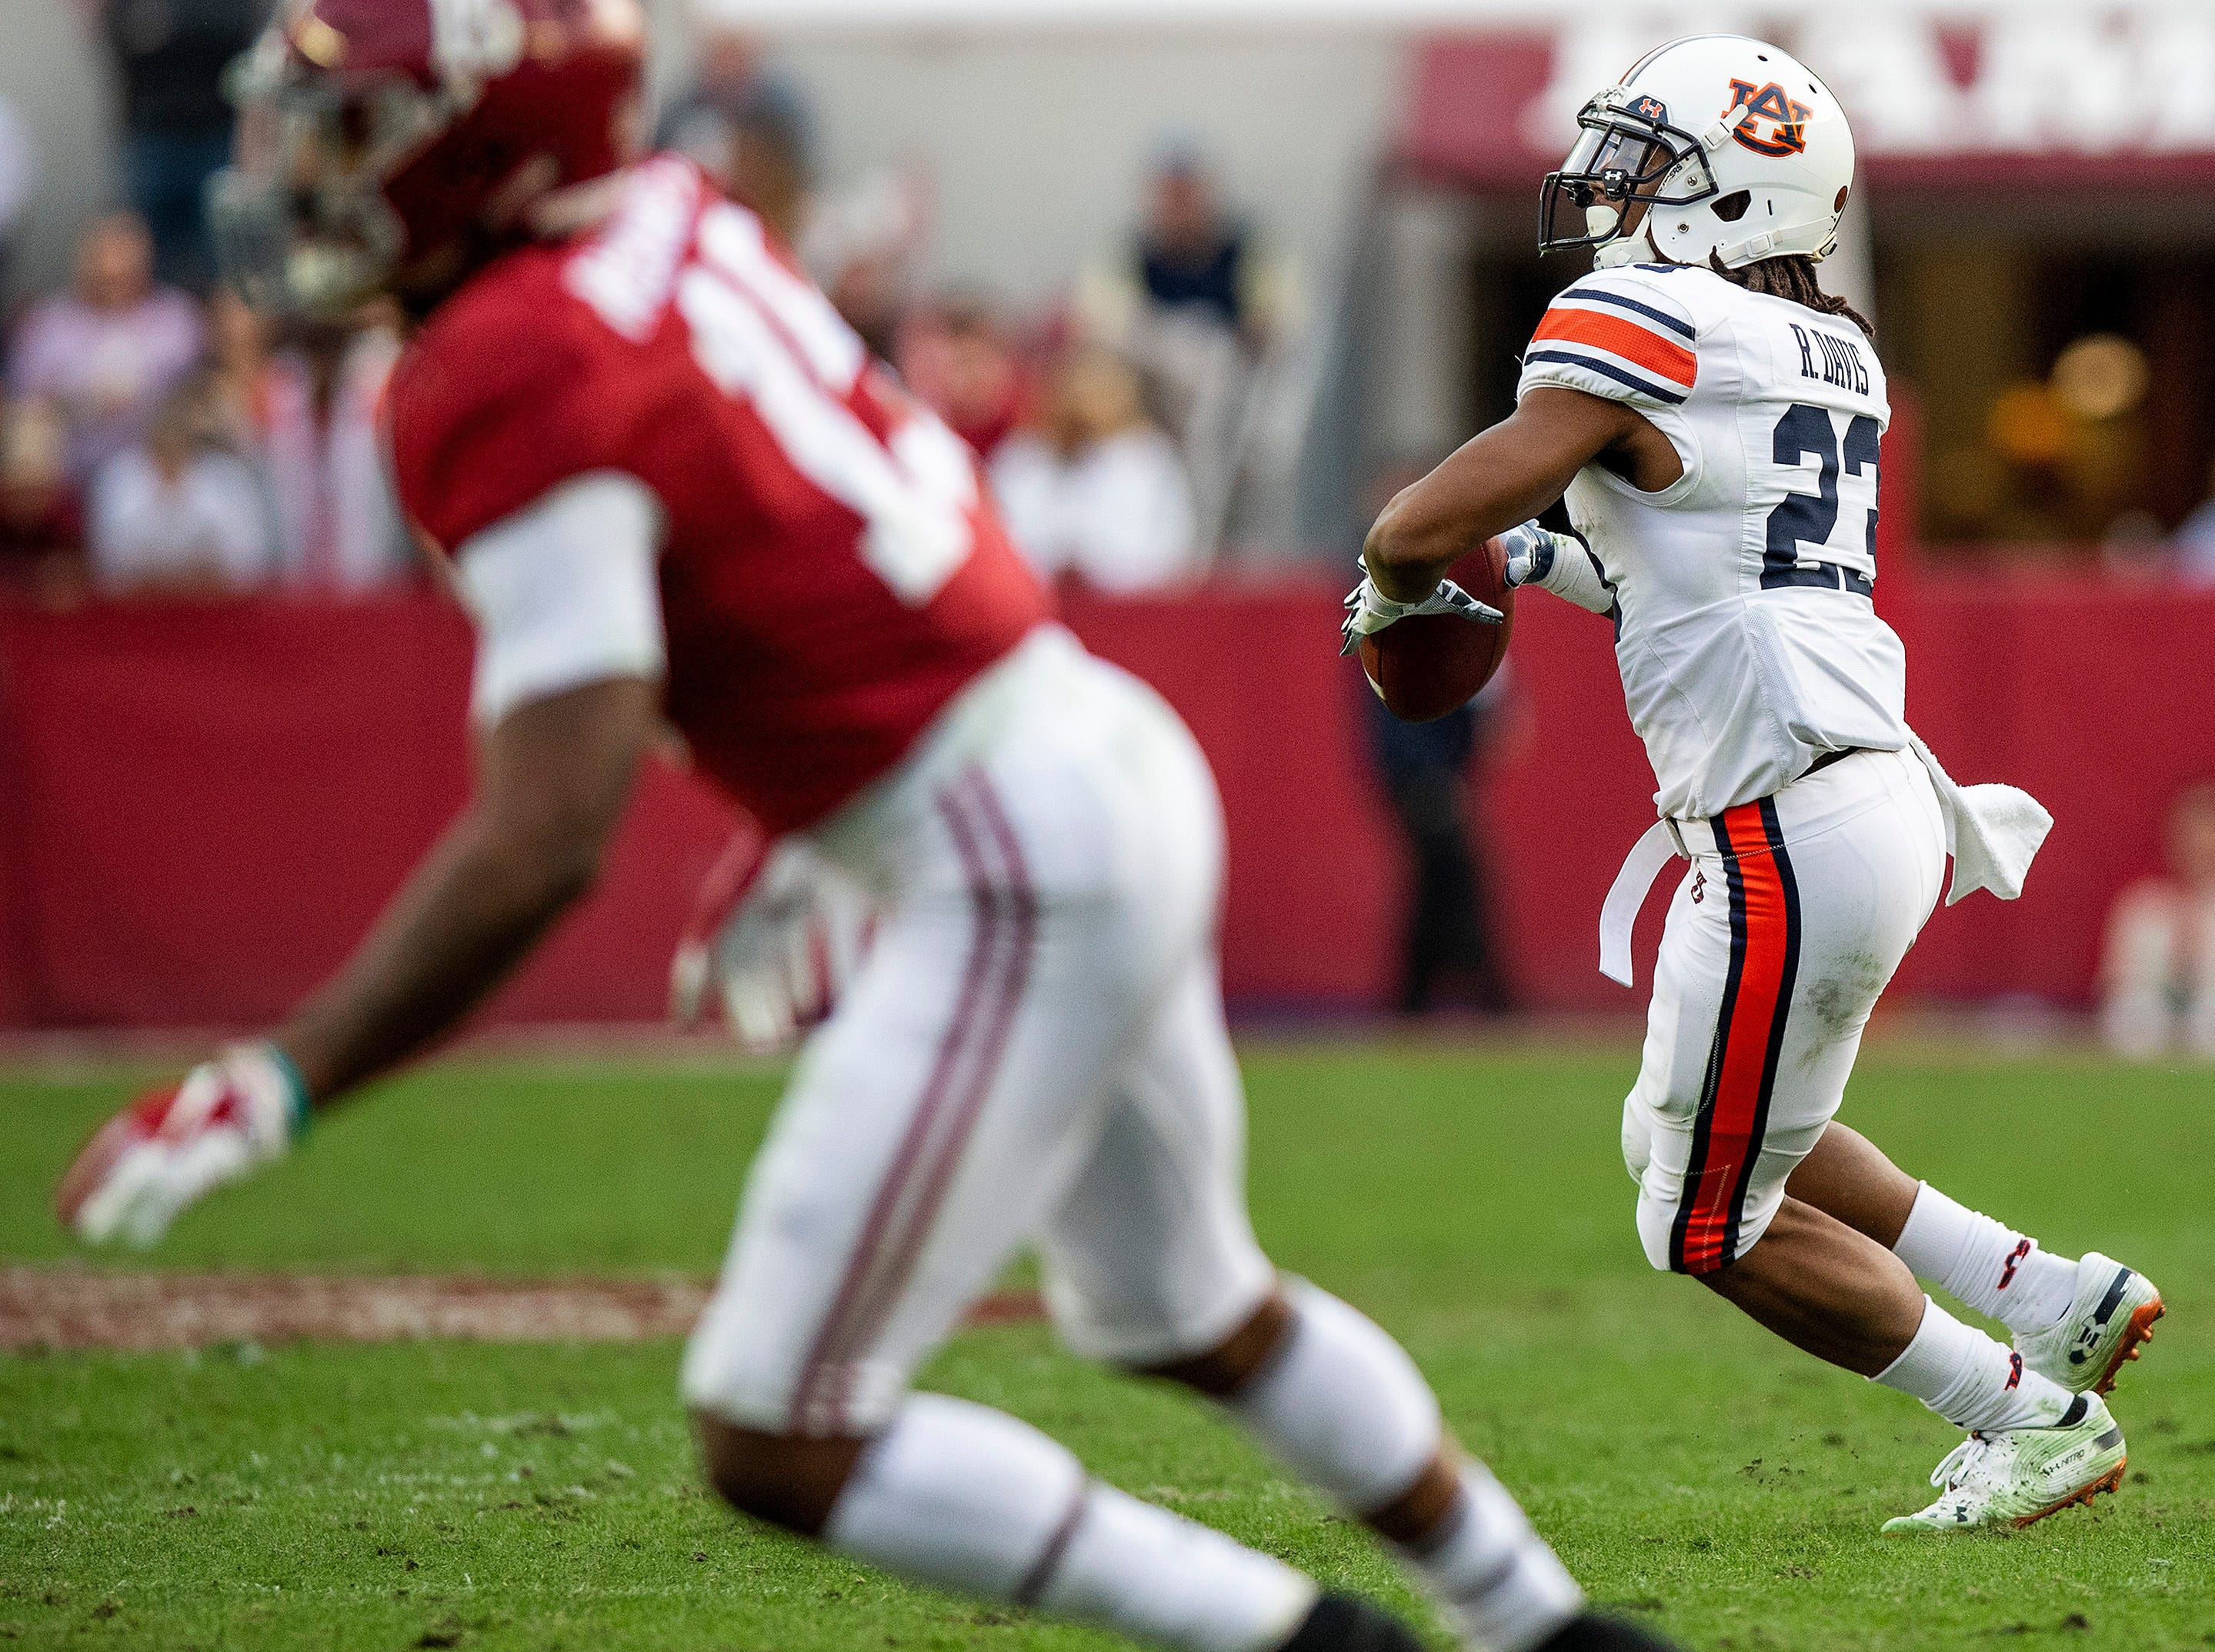 Auburn wide receiver Ryan Davis (23) throws a pass for a touchdown against Alabama in first half action during the Iron Bowl at Bryant-Denny Stadium in Tuscaloosa, Ala., on Saturday November 24, 2018.